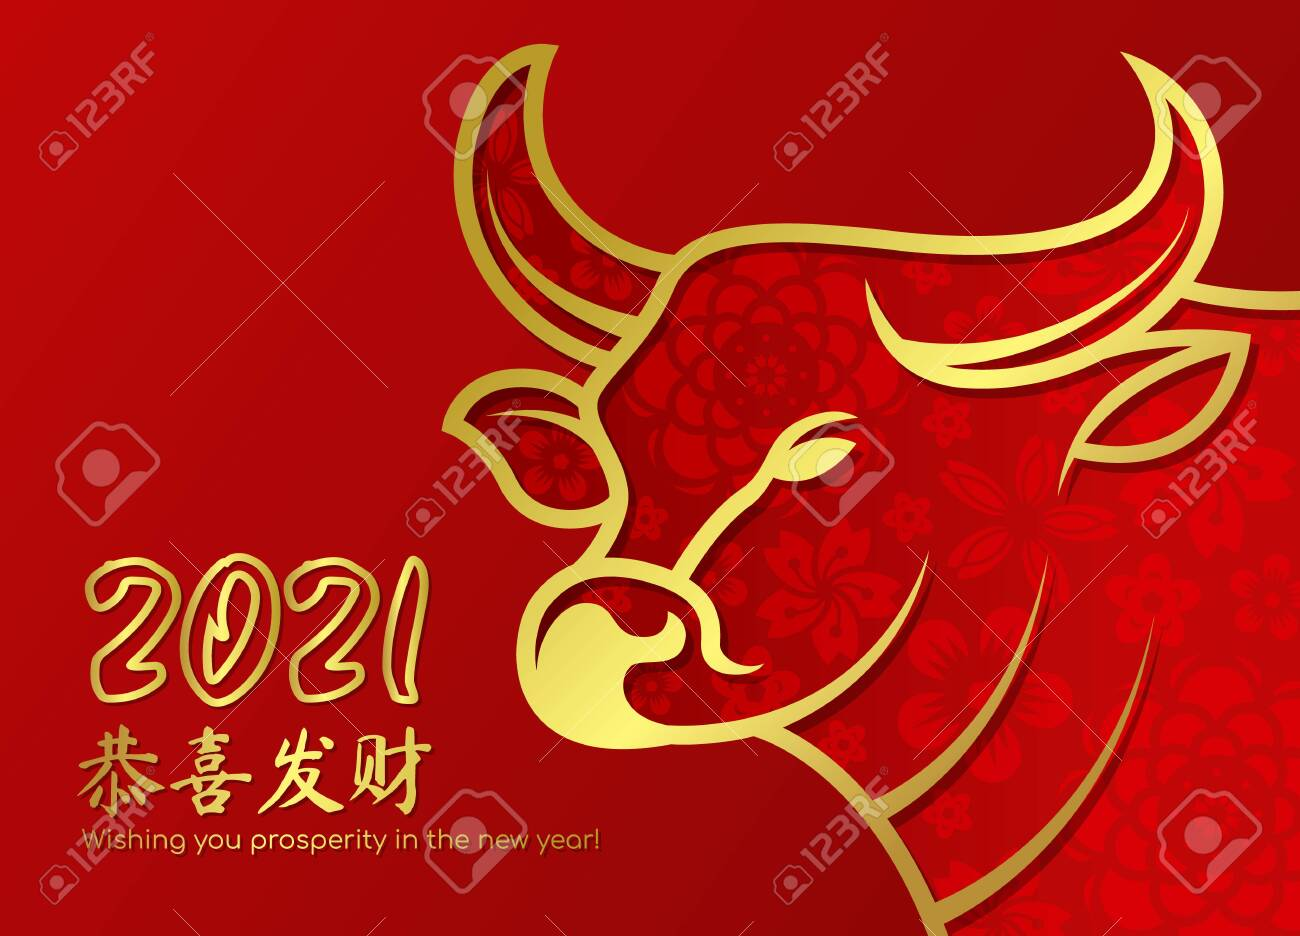 Chinese new year 2021 card - ox cow zodiac gold border line and abstract flower texture - 132443386